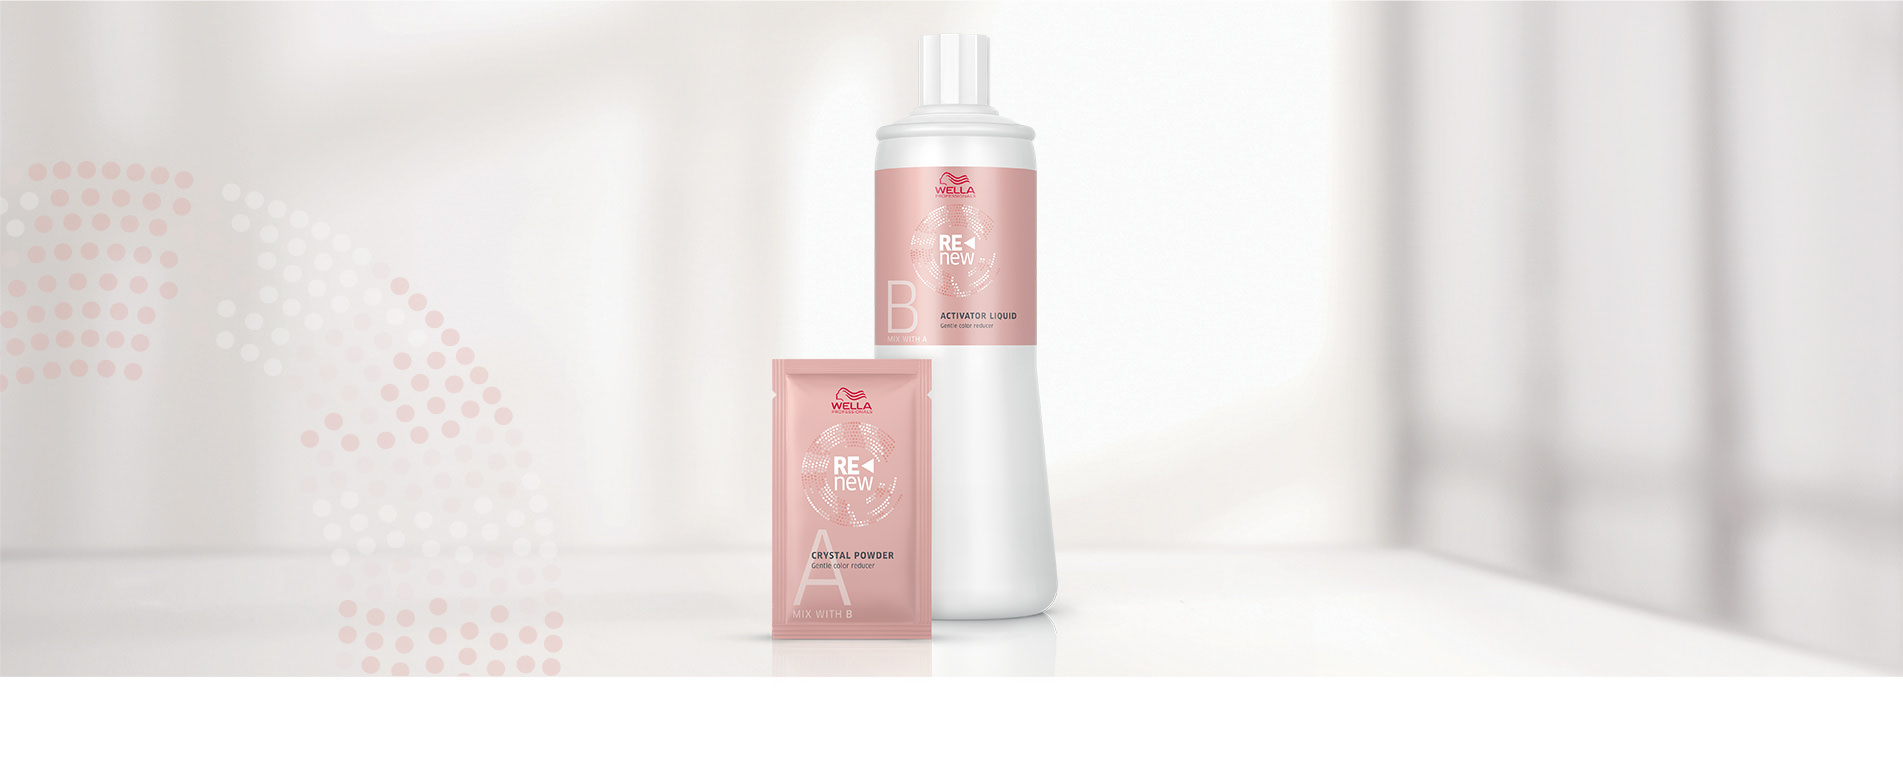 New Zero Damage Hair Colour Reducer I Wella Professionals